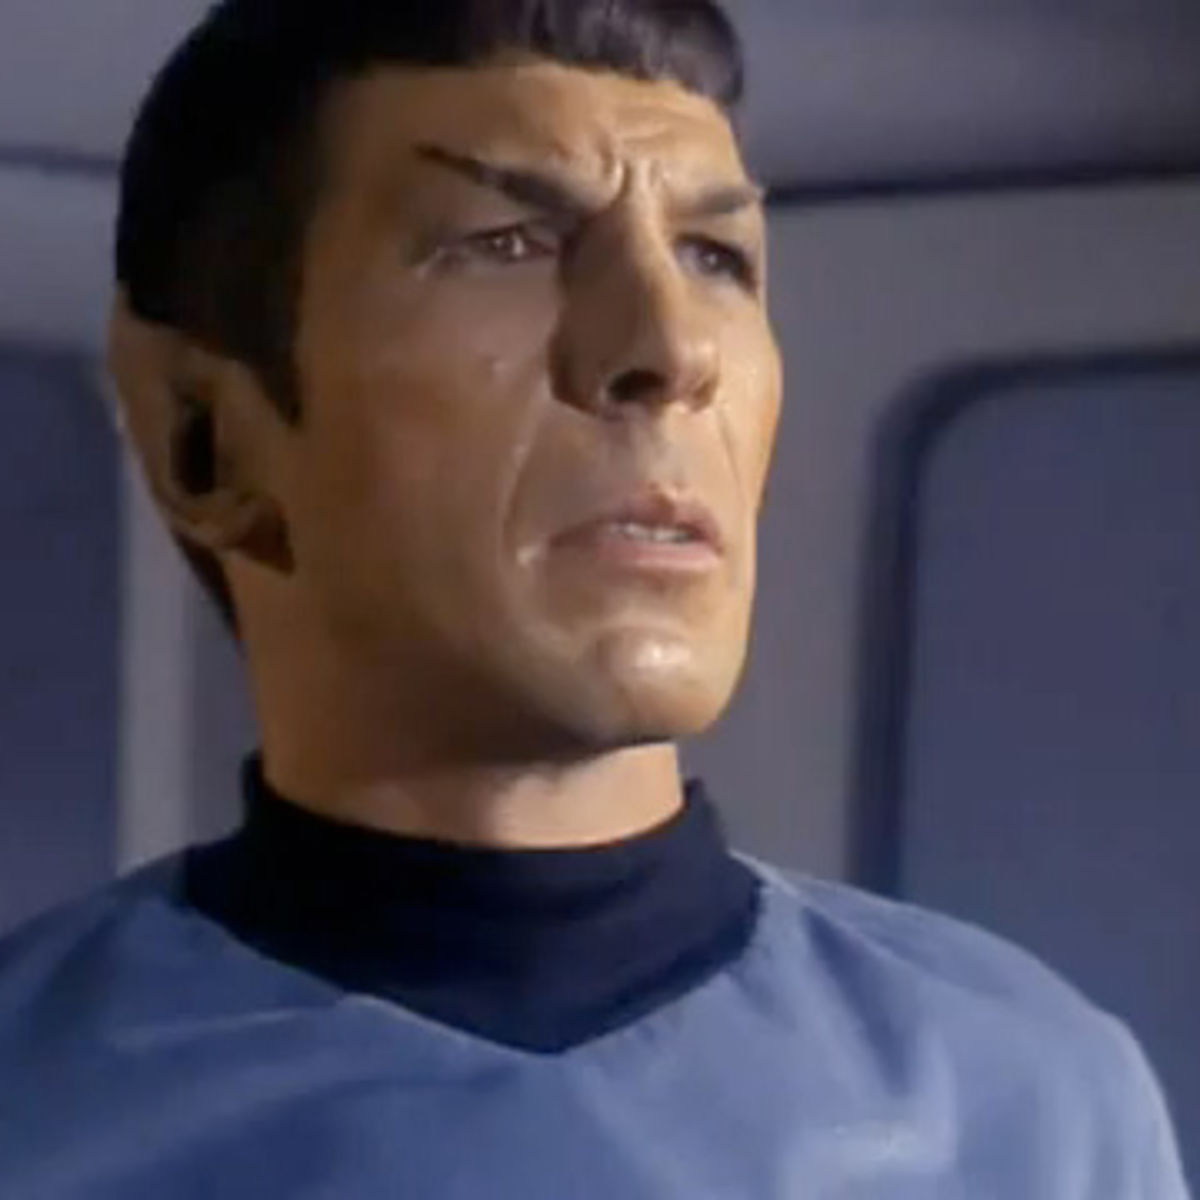 SpockFascinating012211.jpg